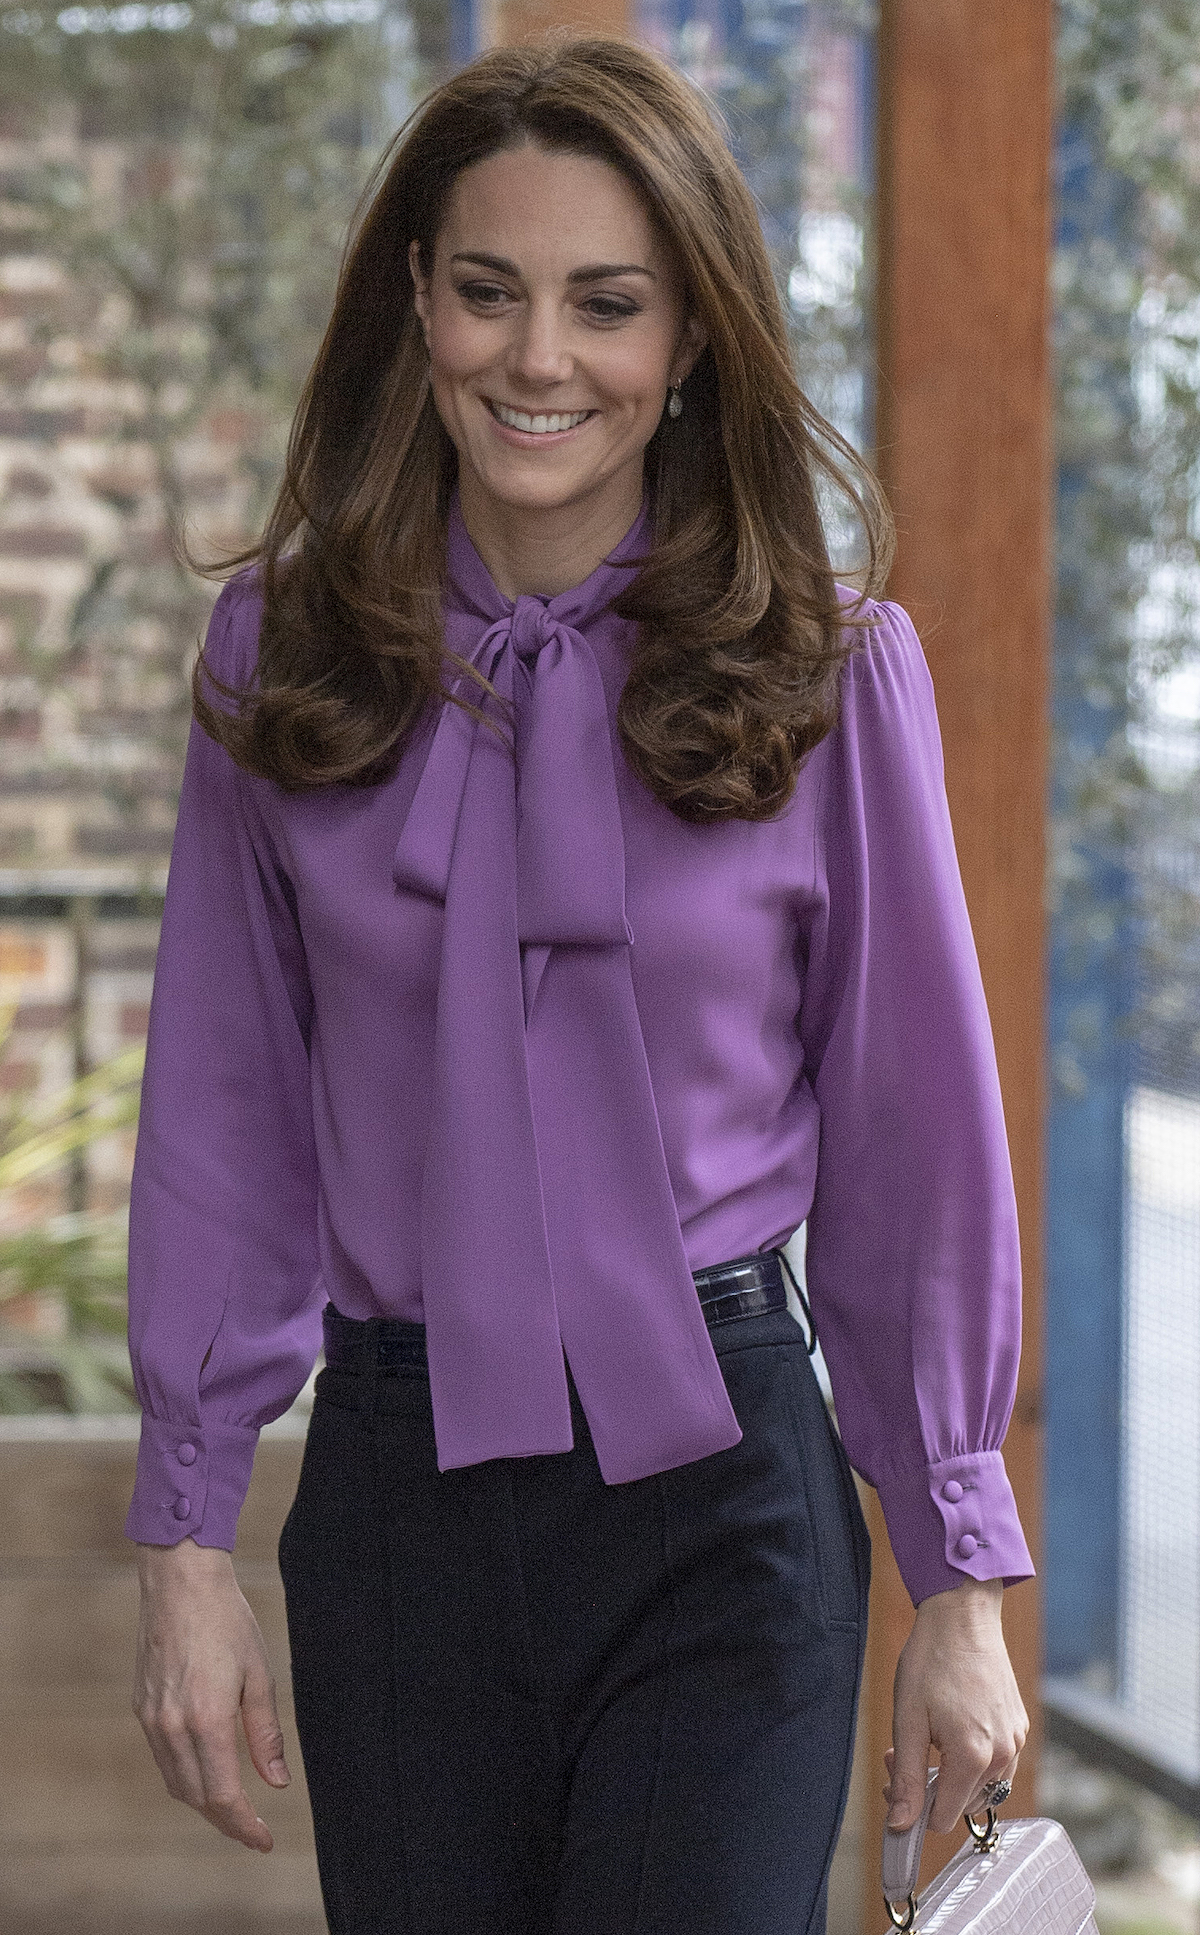 Britain's Catherine, Duchess of Cambridge visits the Henry Fawcett Children's Centre in London on March 12, 2019. - The Duchess visited the Henry Fawcett Childrens Centre to learn more about the work being done by local organisations in Lambeth and their partners to support young children and their families. (Photo credit should read ARTHUR EDWARDS/AFP/Getty Images)